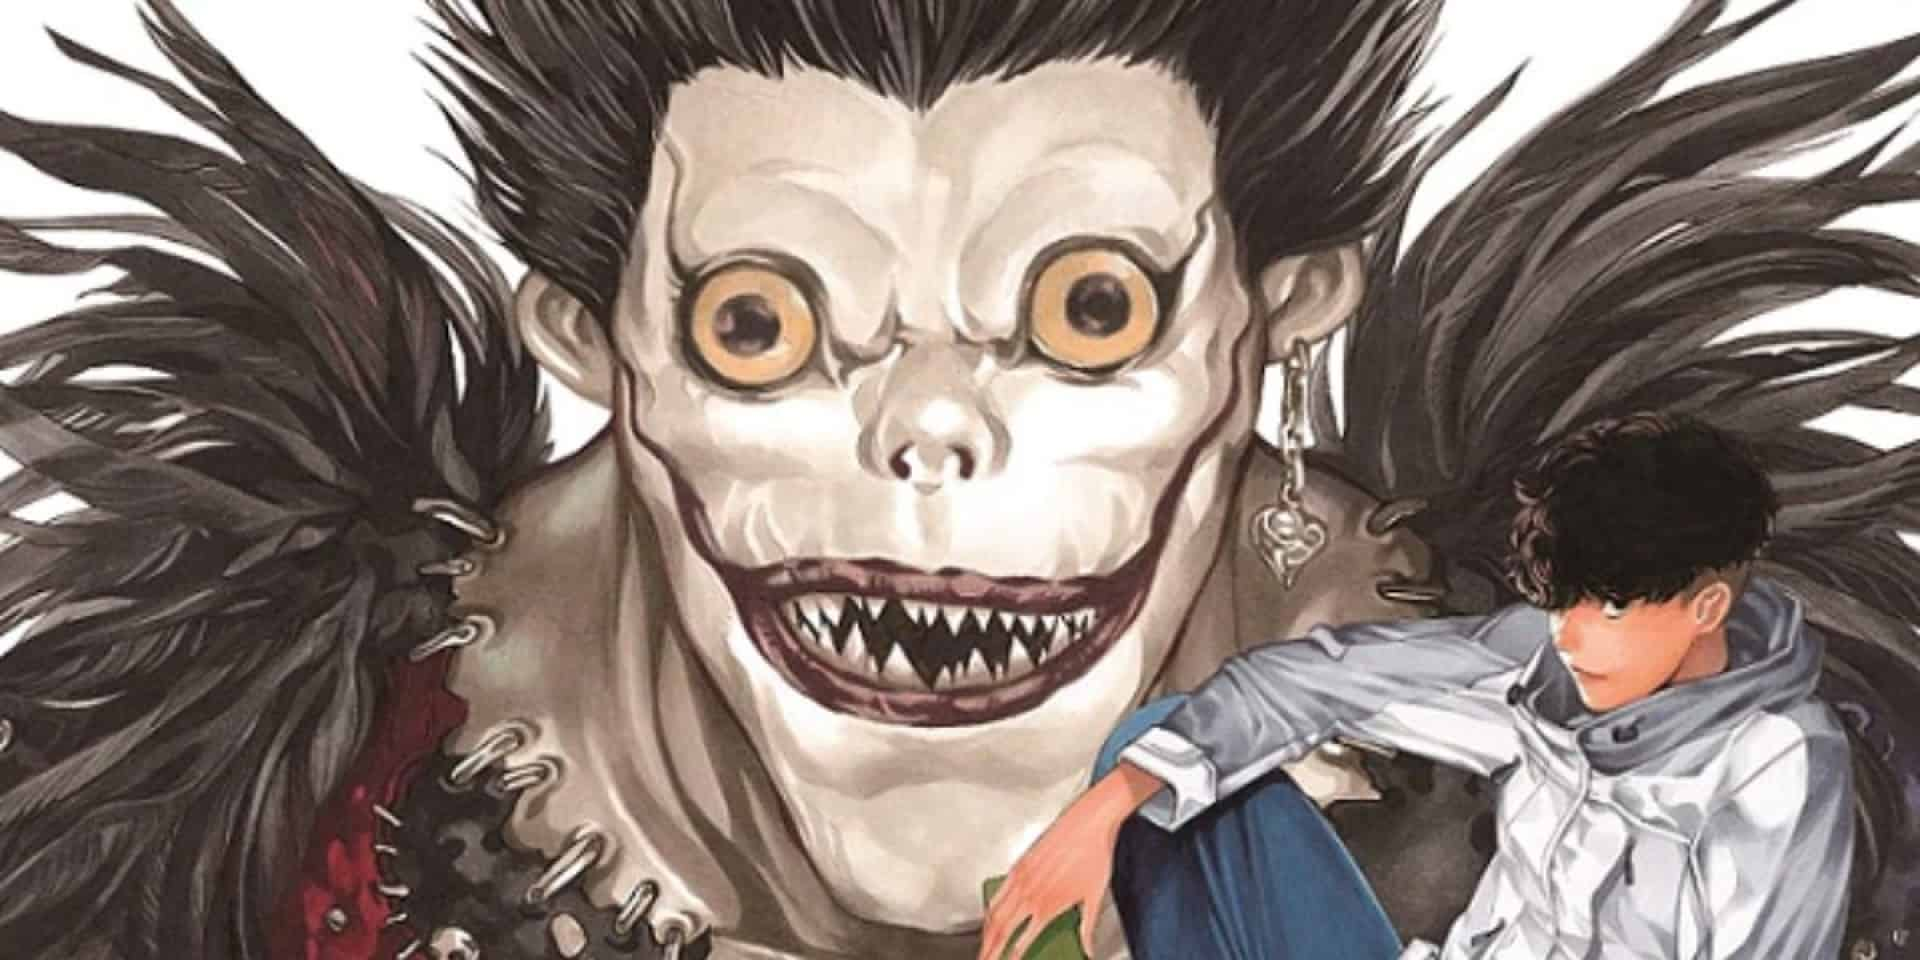 Death Note - LATEST DEATH NOTE ONESHOT HAS DONALD TRUMP IN POSSESSION OF TITULAR BOOK FOR $10 TRILLION